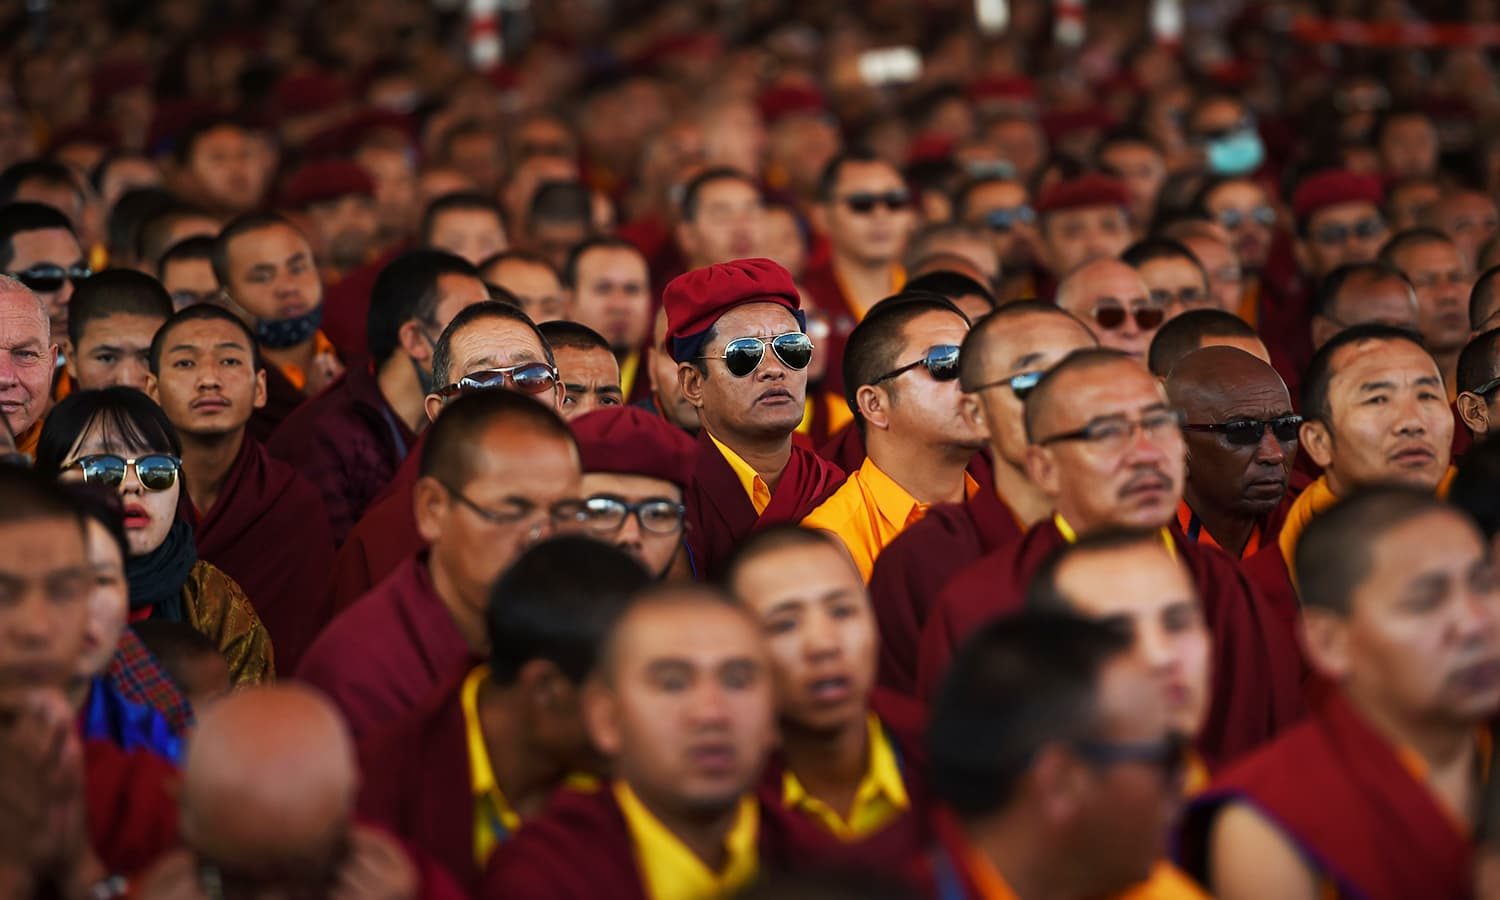 Buddhist monks attend prayer during the Naropa festival. — AFP